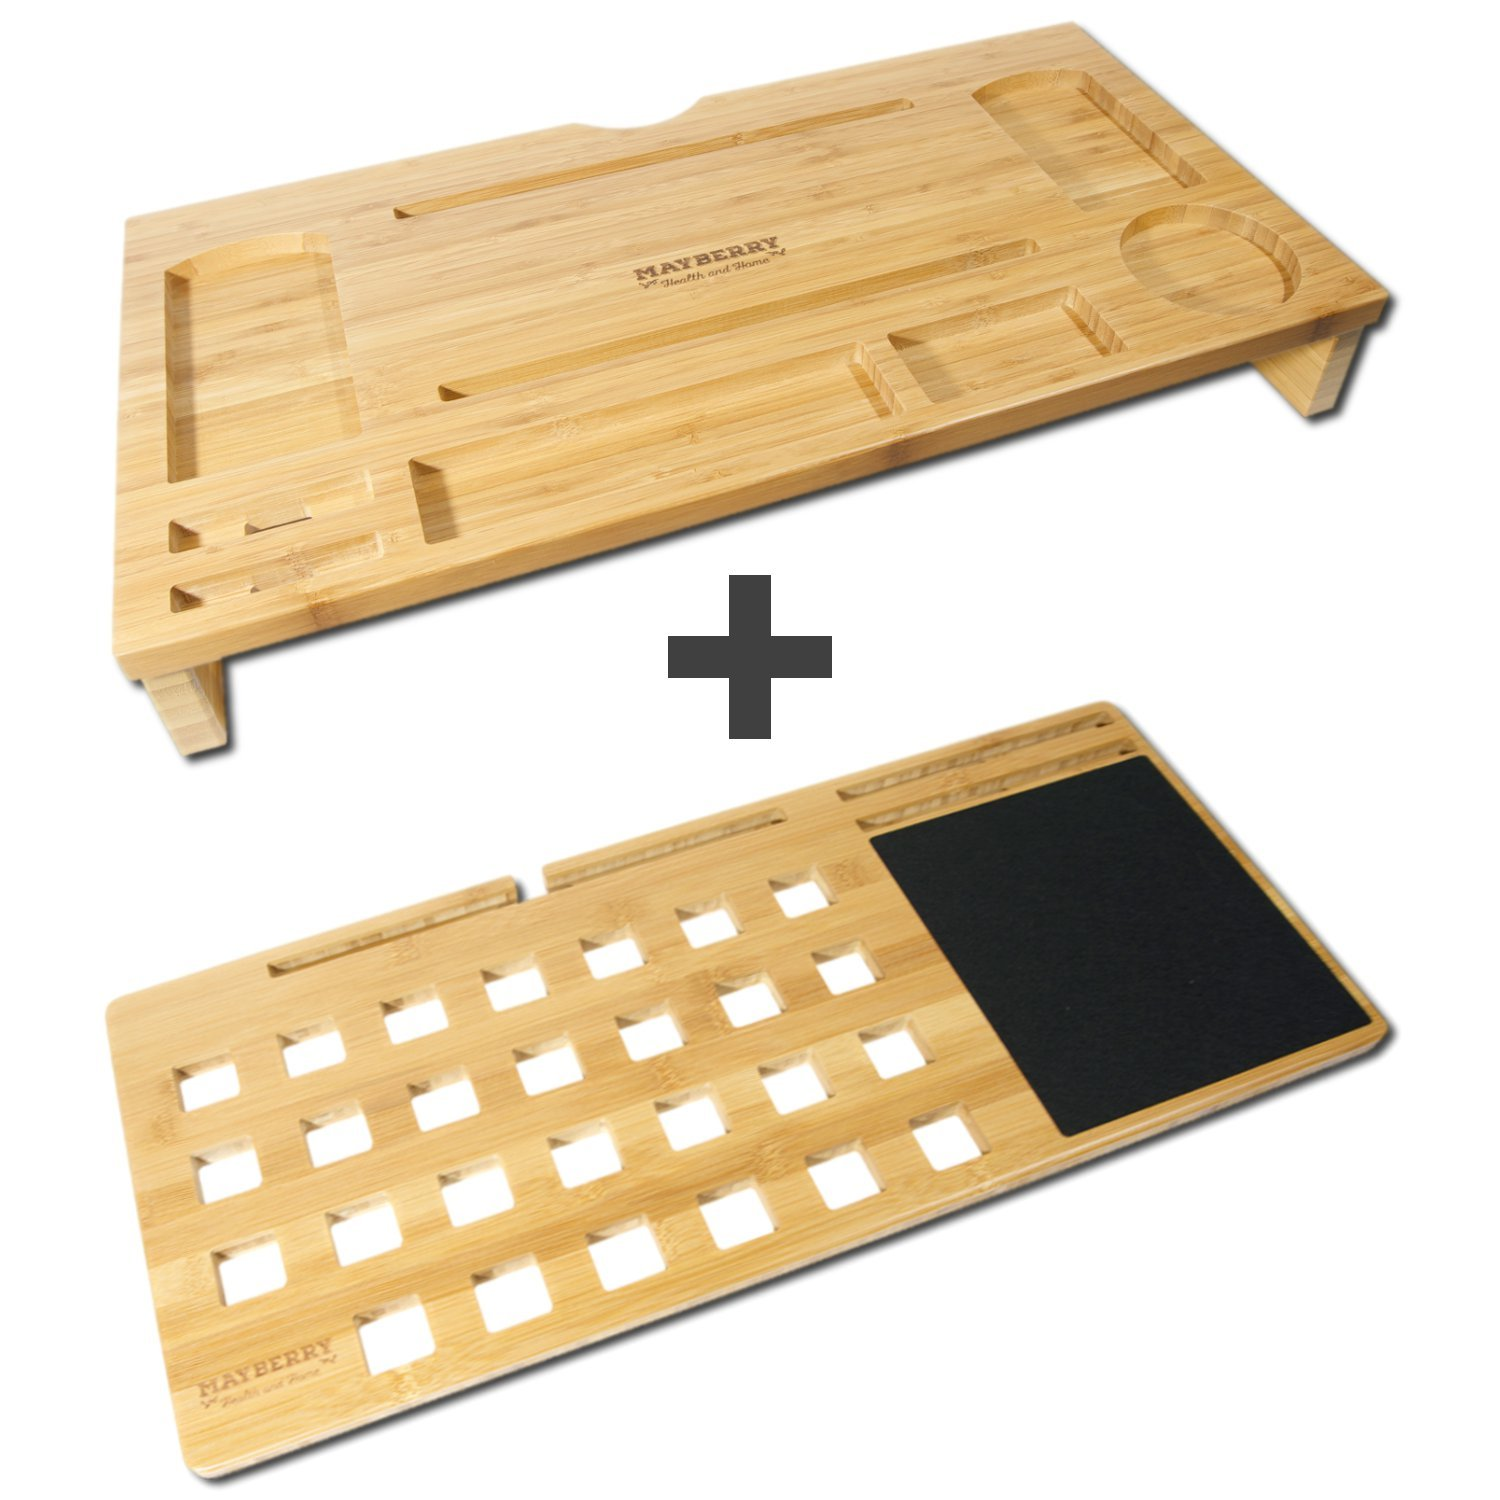 Bamboo Computer Desktop Organizer and Lap Desk Board for Laptops up to 17'' Wide. Built-in Mouse Pad Plus Slots for Smartphones and Tablets.